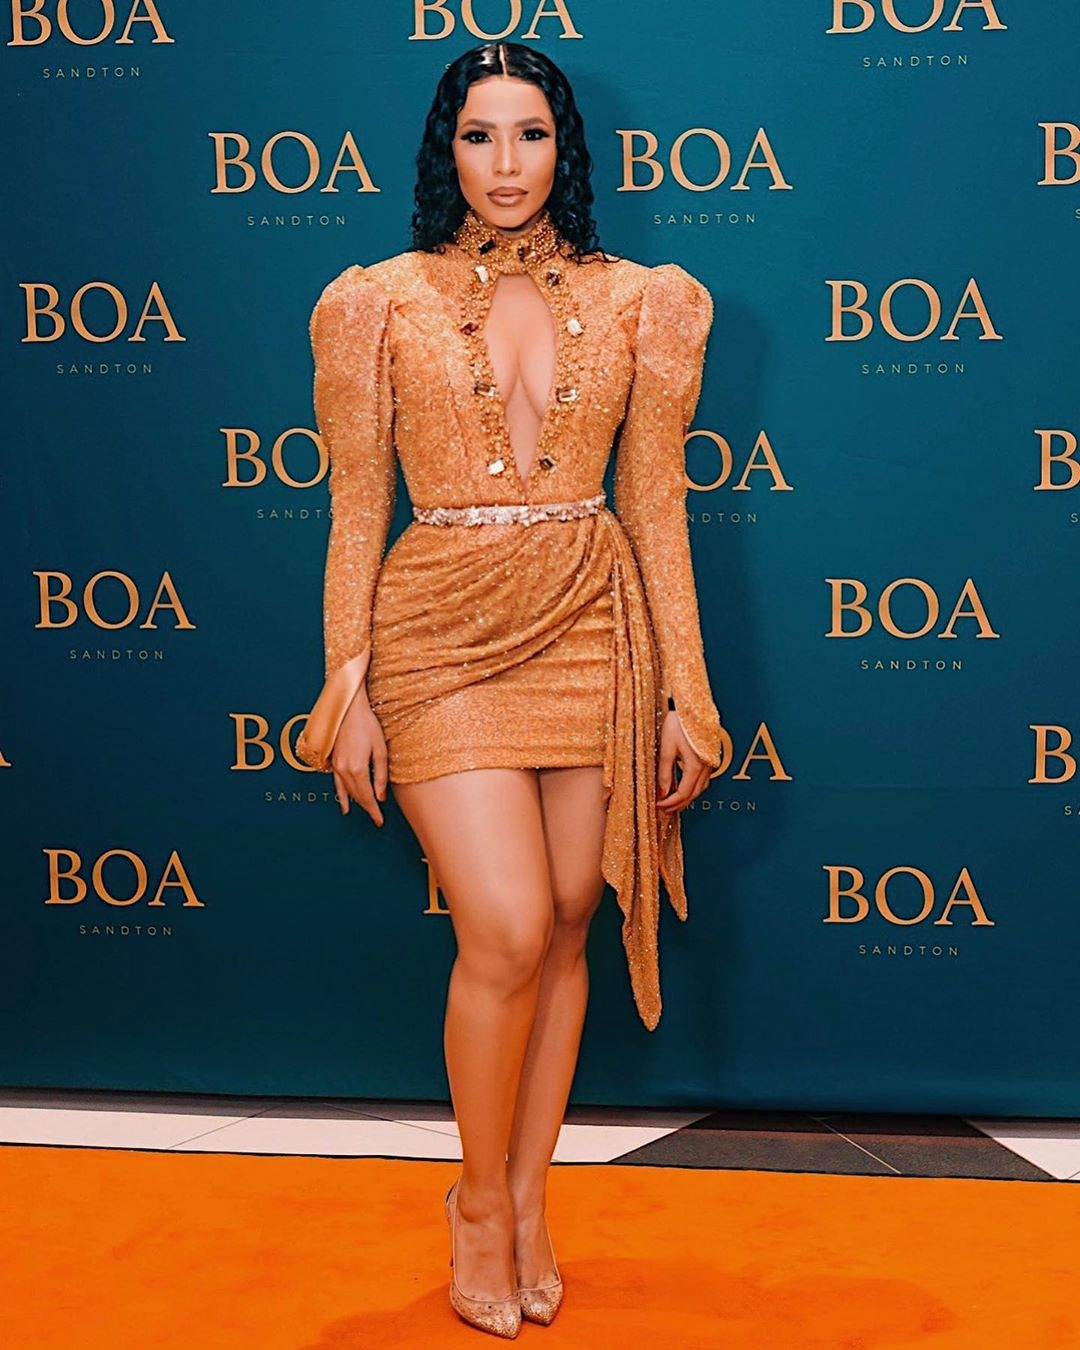 Stylish-celebs-in-africa-the-most-rave-worthy-looks-on-women-across-africa